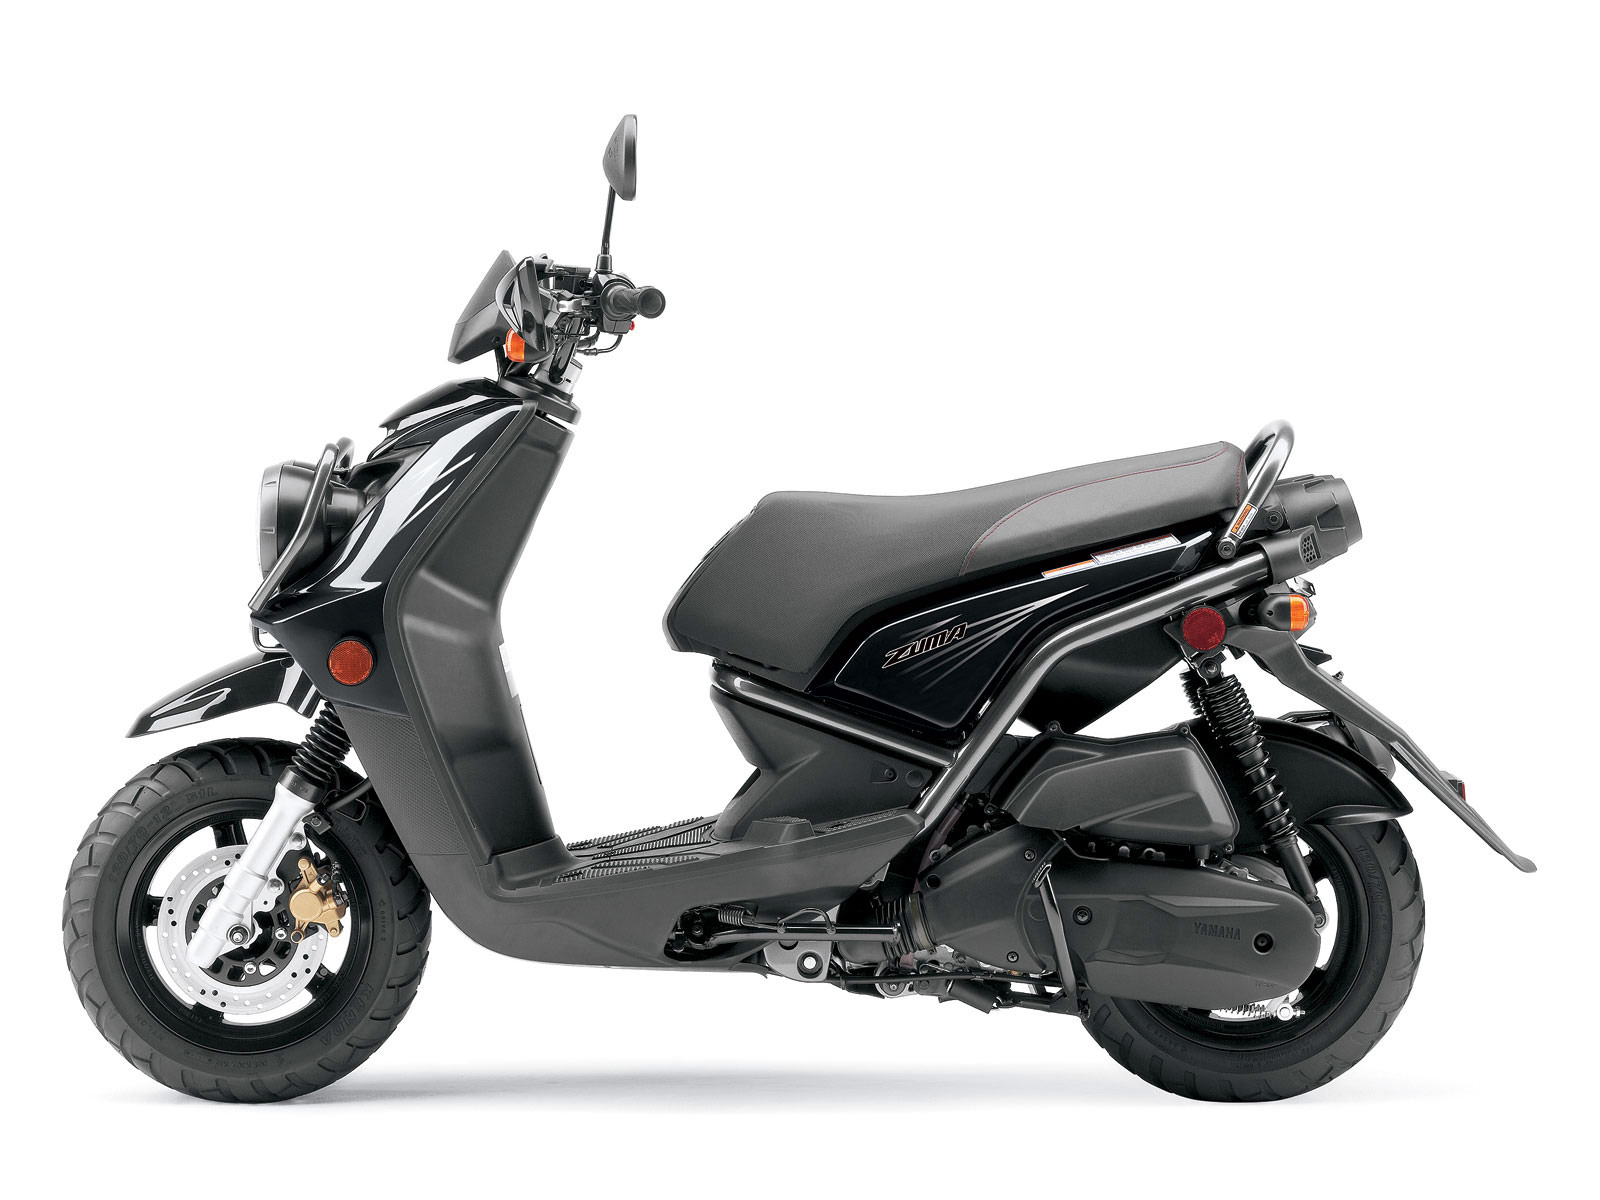 yamaha zuma 125 bws 125 2011 accident lawyers information. Black Bedroom Furniture Sets. Home Design Ideas